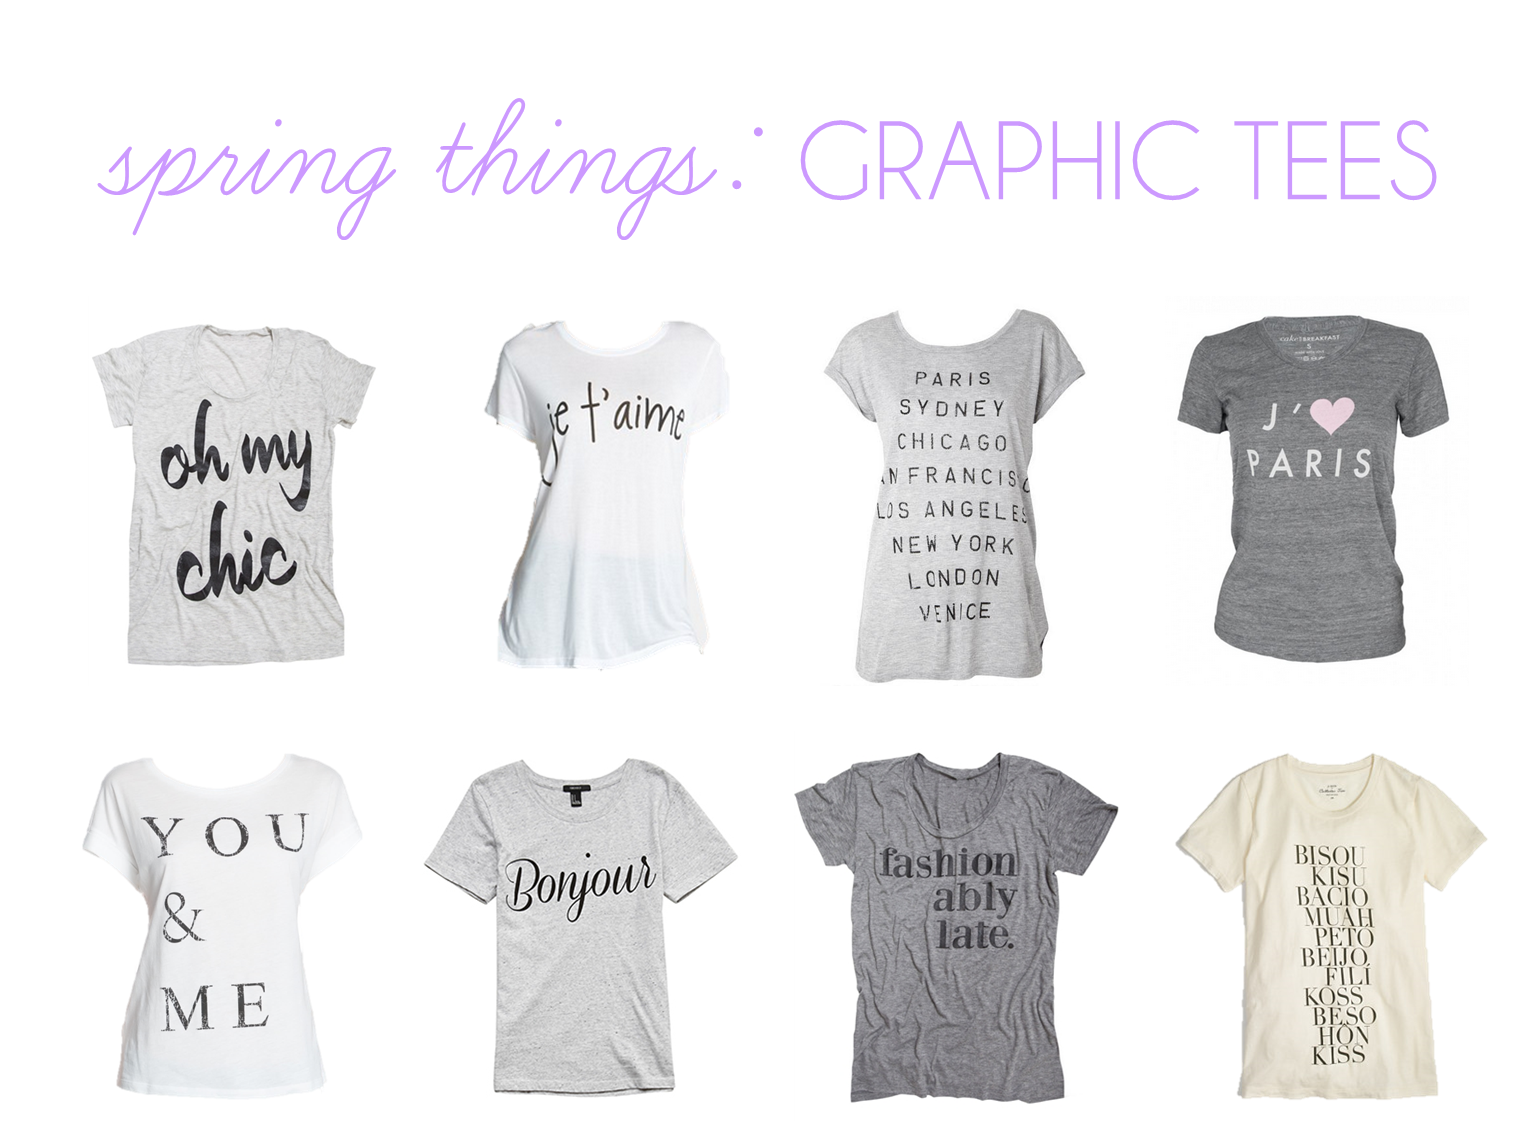 graphic tees laur loves pink